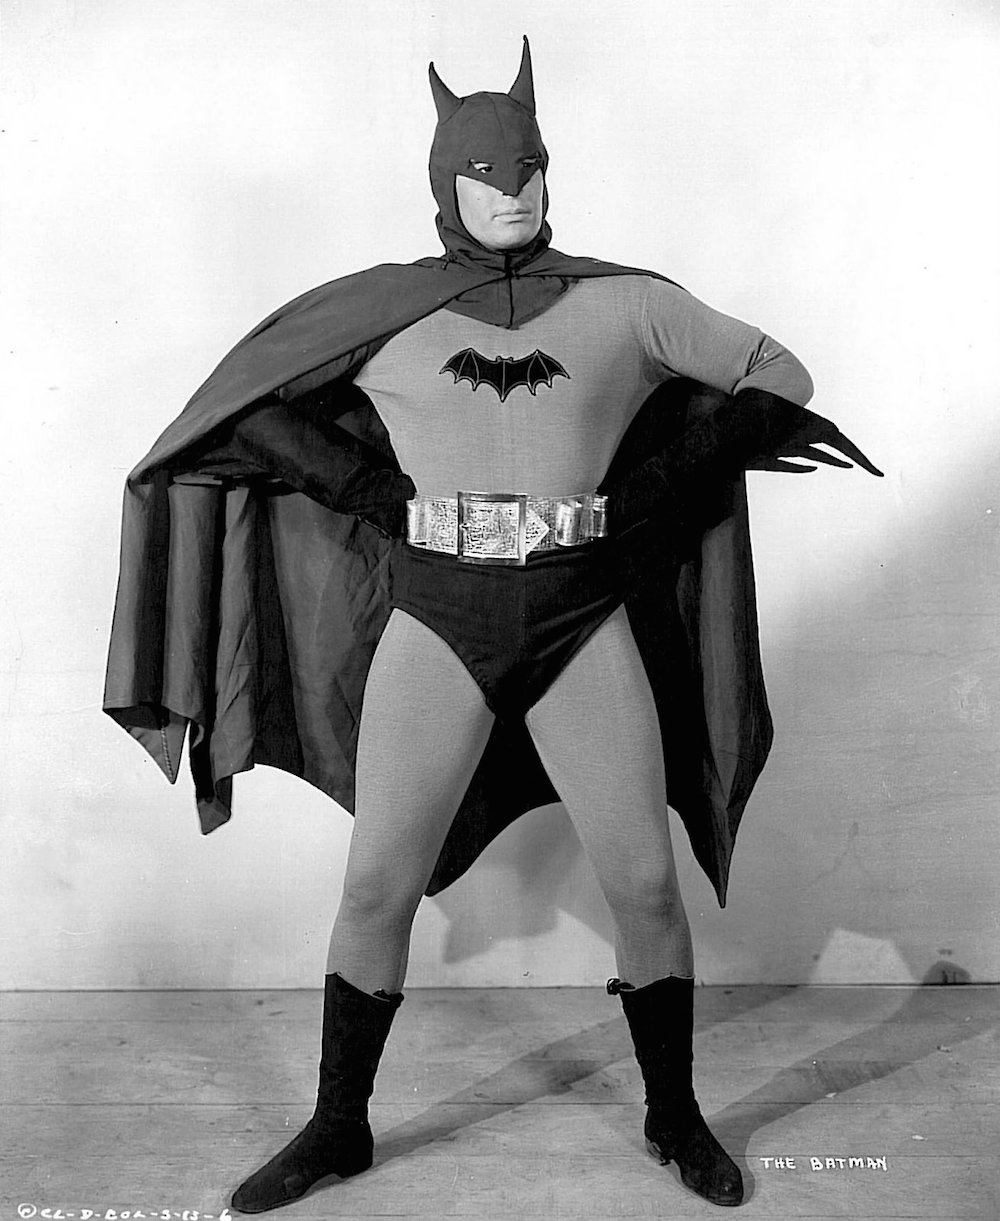 history of the Batsuit - Lewis Wilson was the first actor to play the caped crusader in the 1943